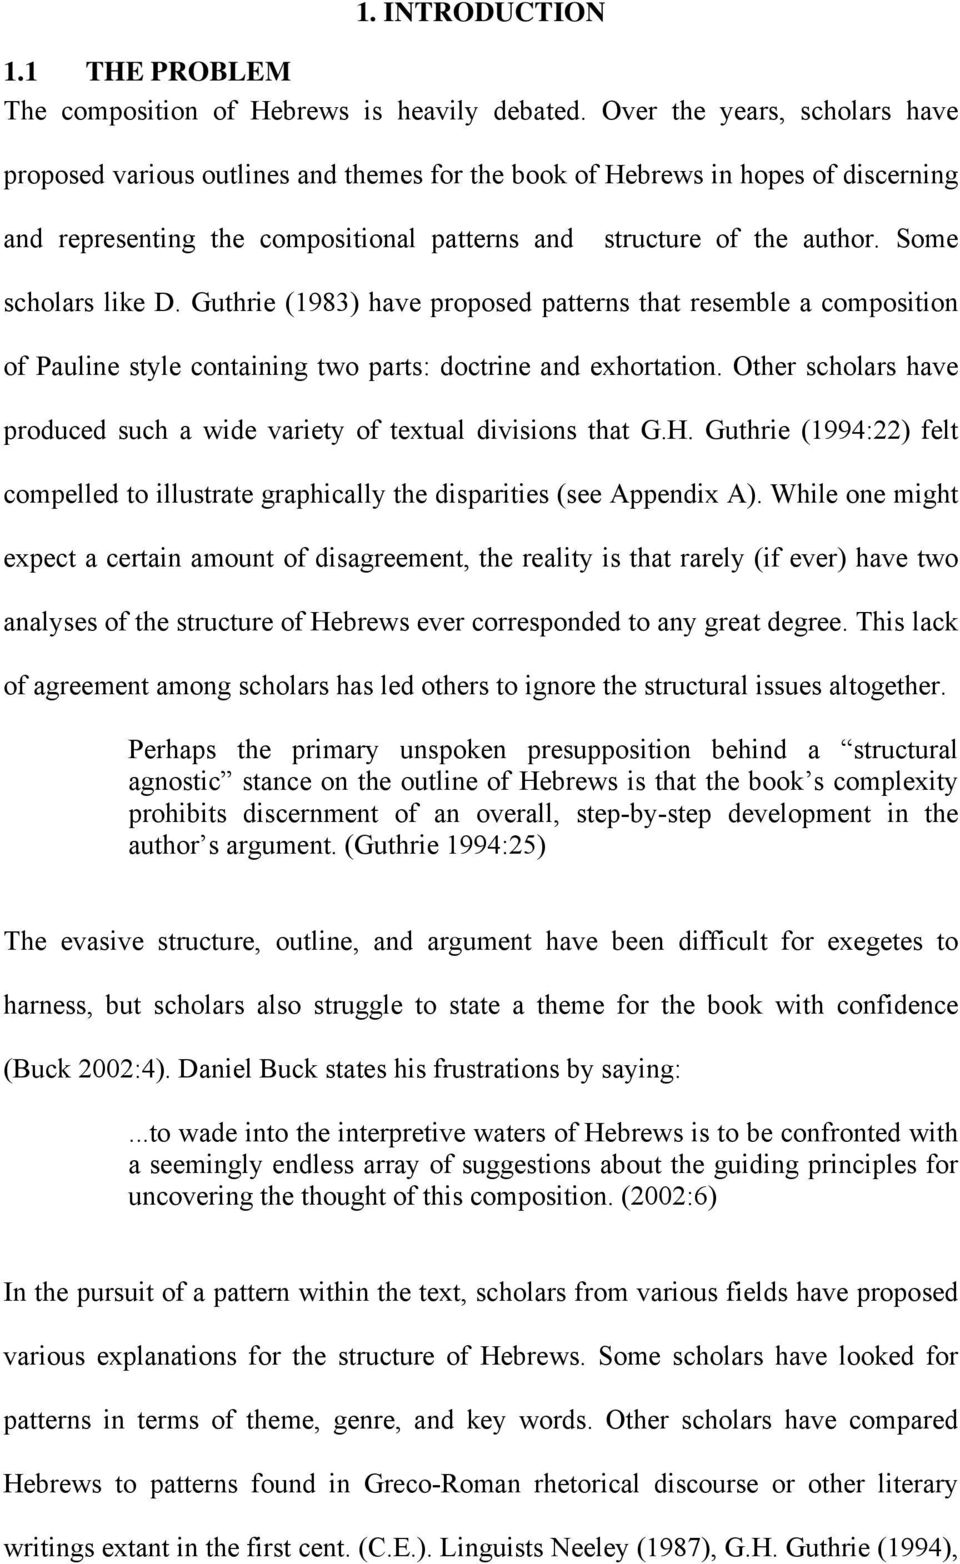 Some scholars like D. Guthrie (1983) have proposed patterns that resemble a composition of Pauline style containing two parts: doctrine and exhortation.